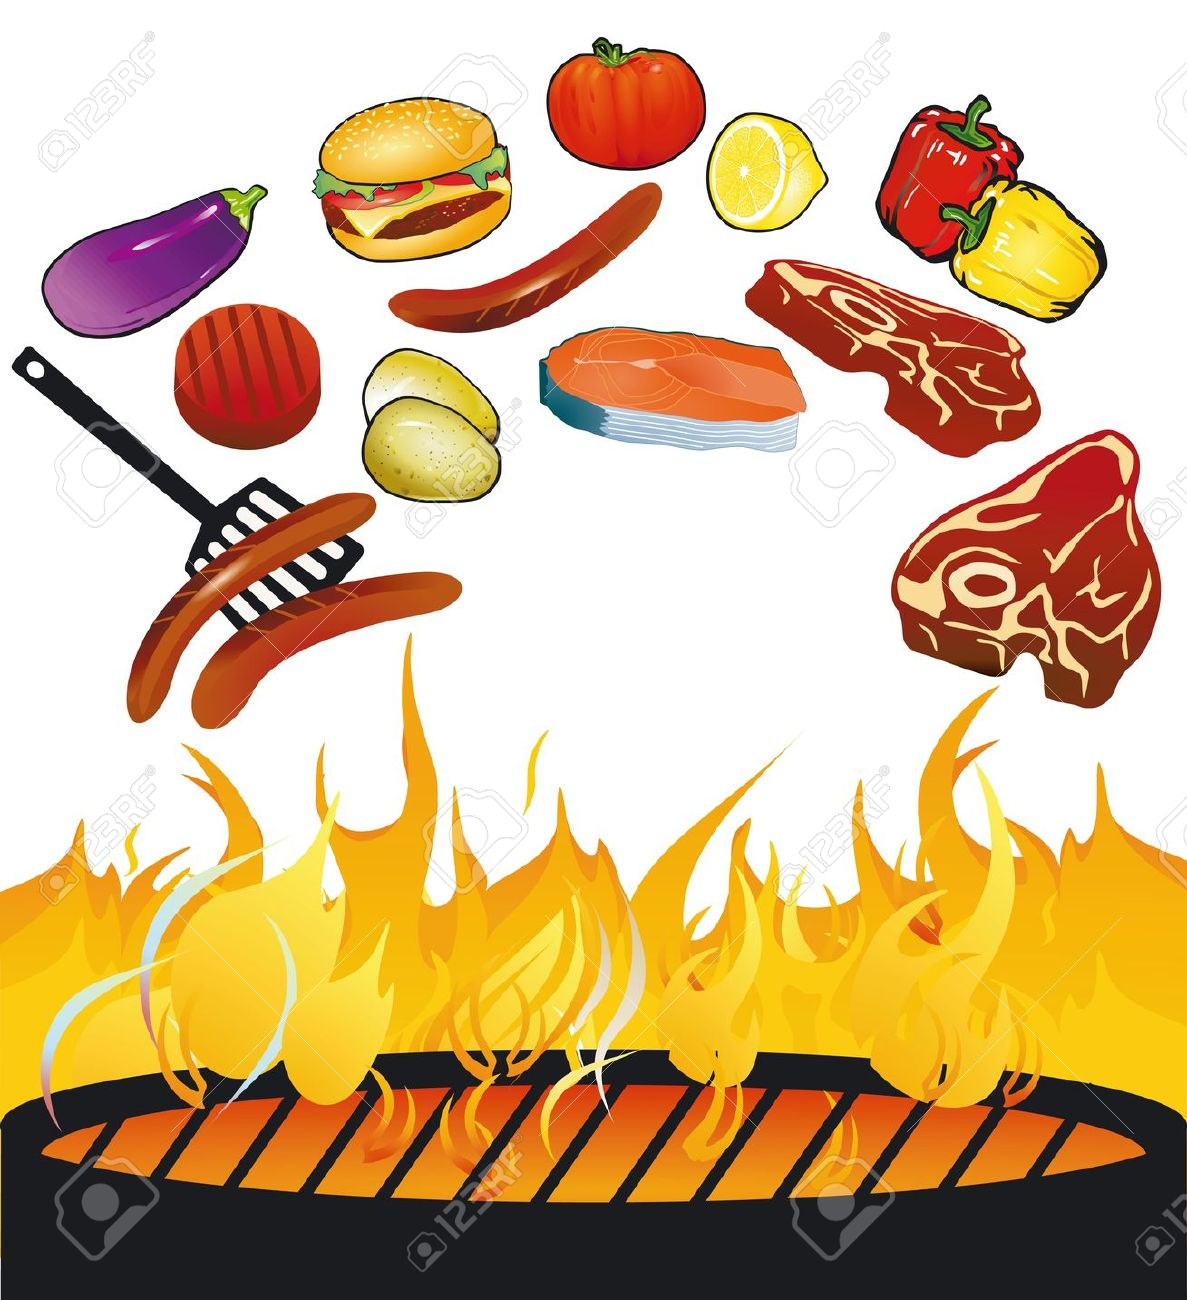 Clipart of bbq grill